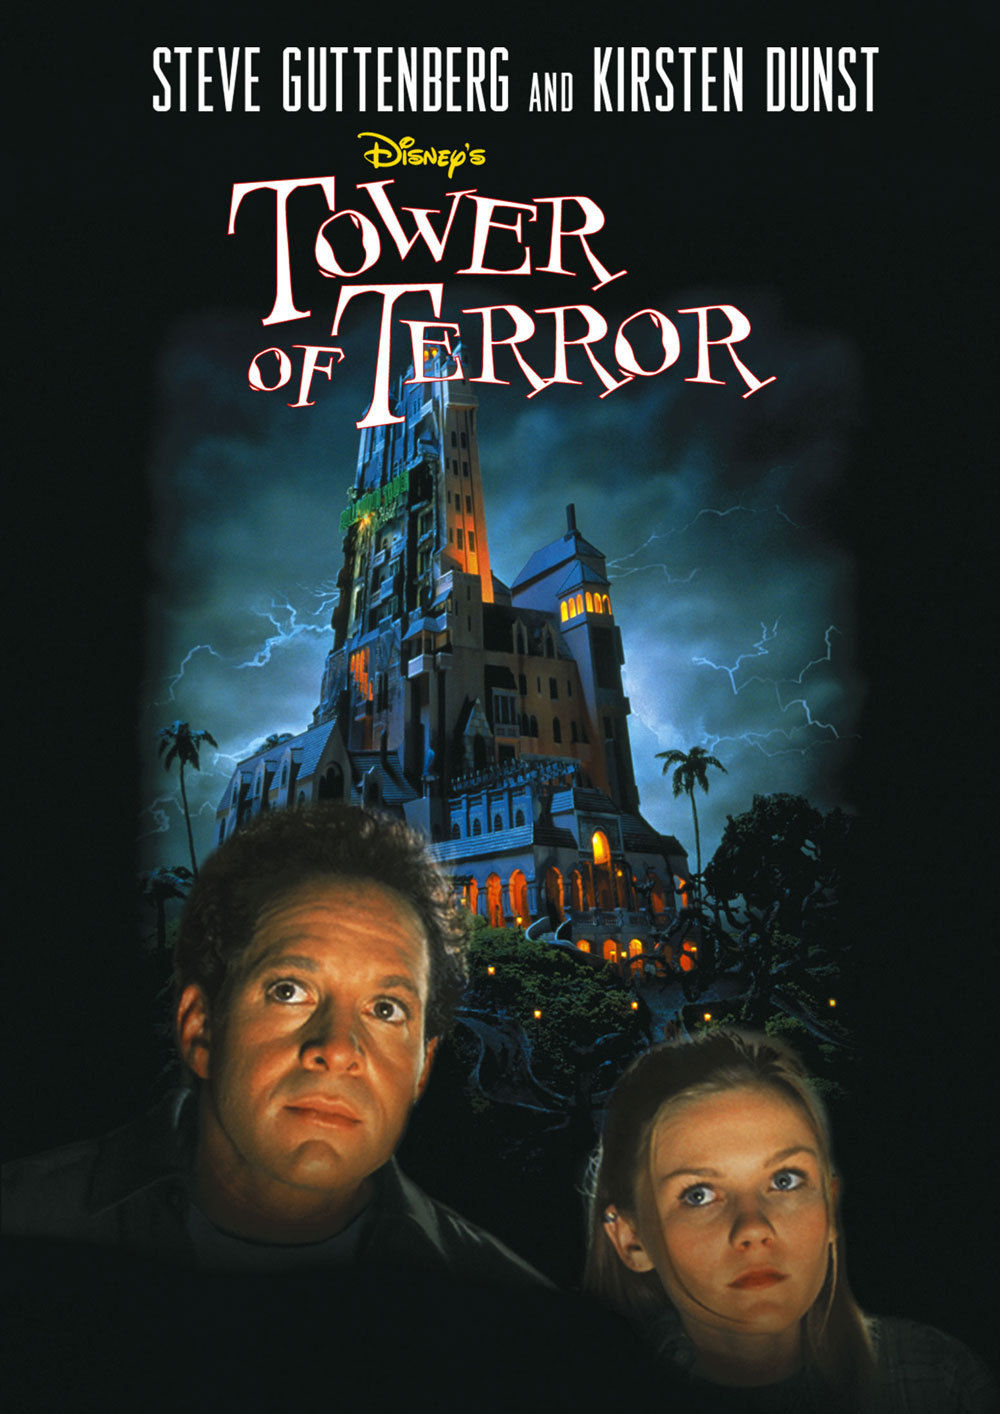 Disney's_Tower_of_Terror_-_1997_Movie_-_iTunes_DVD_Cover.png